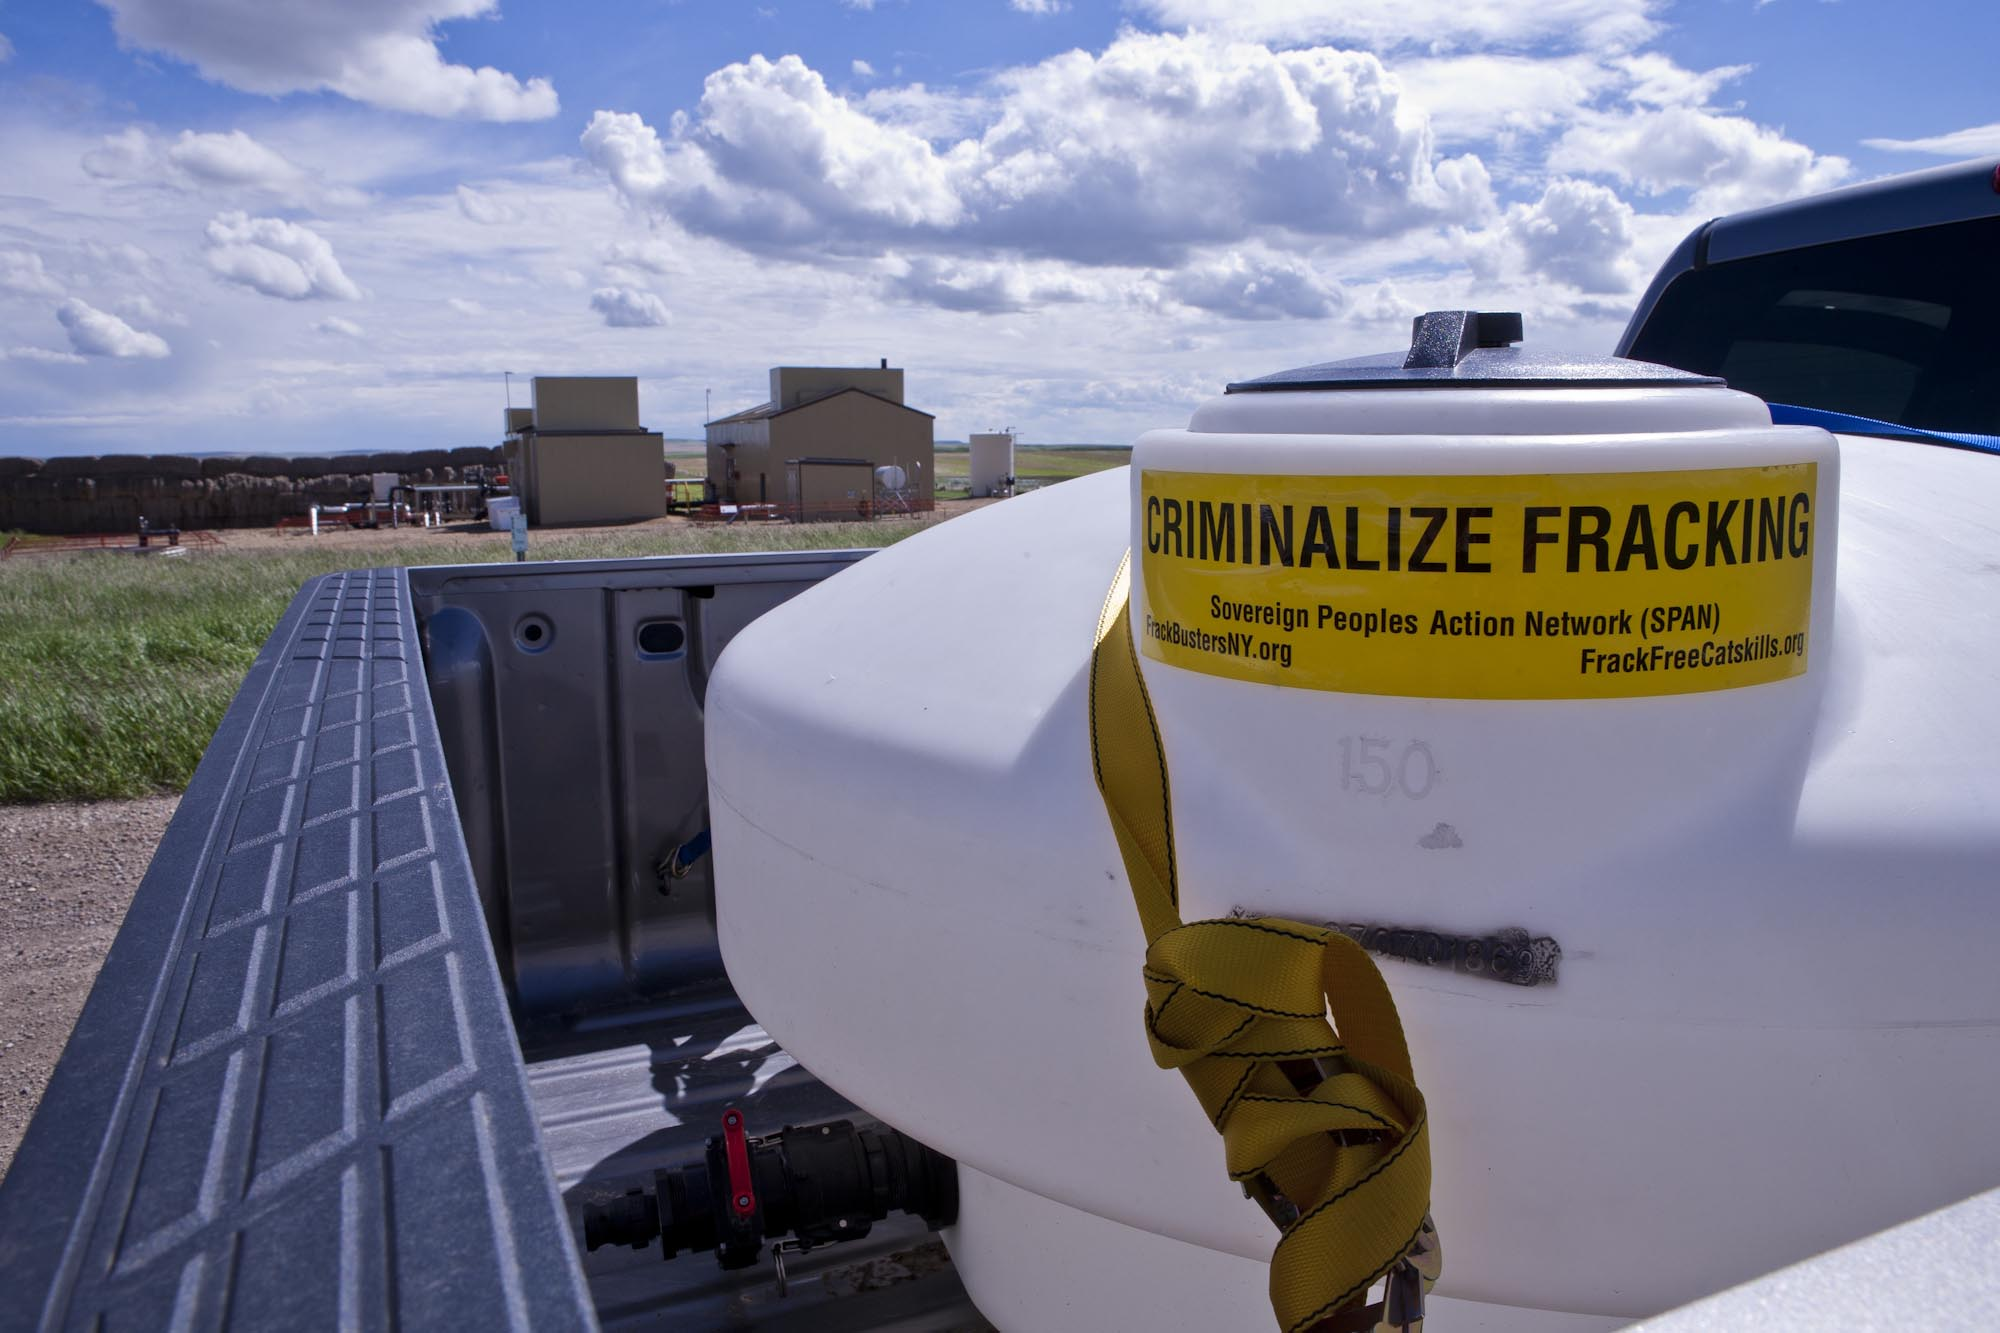 2013 06 Criminalize fracing Encana 7-13 compressors at Rosebud Alberta